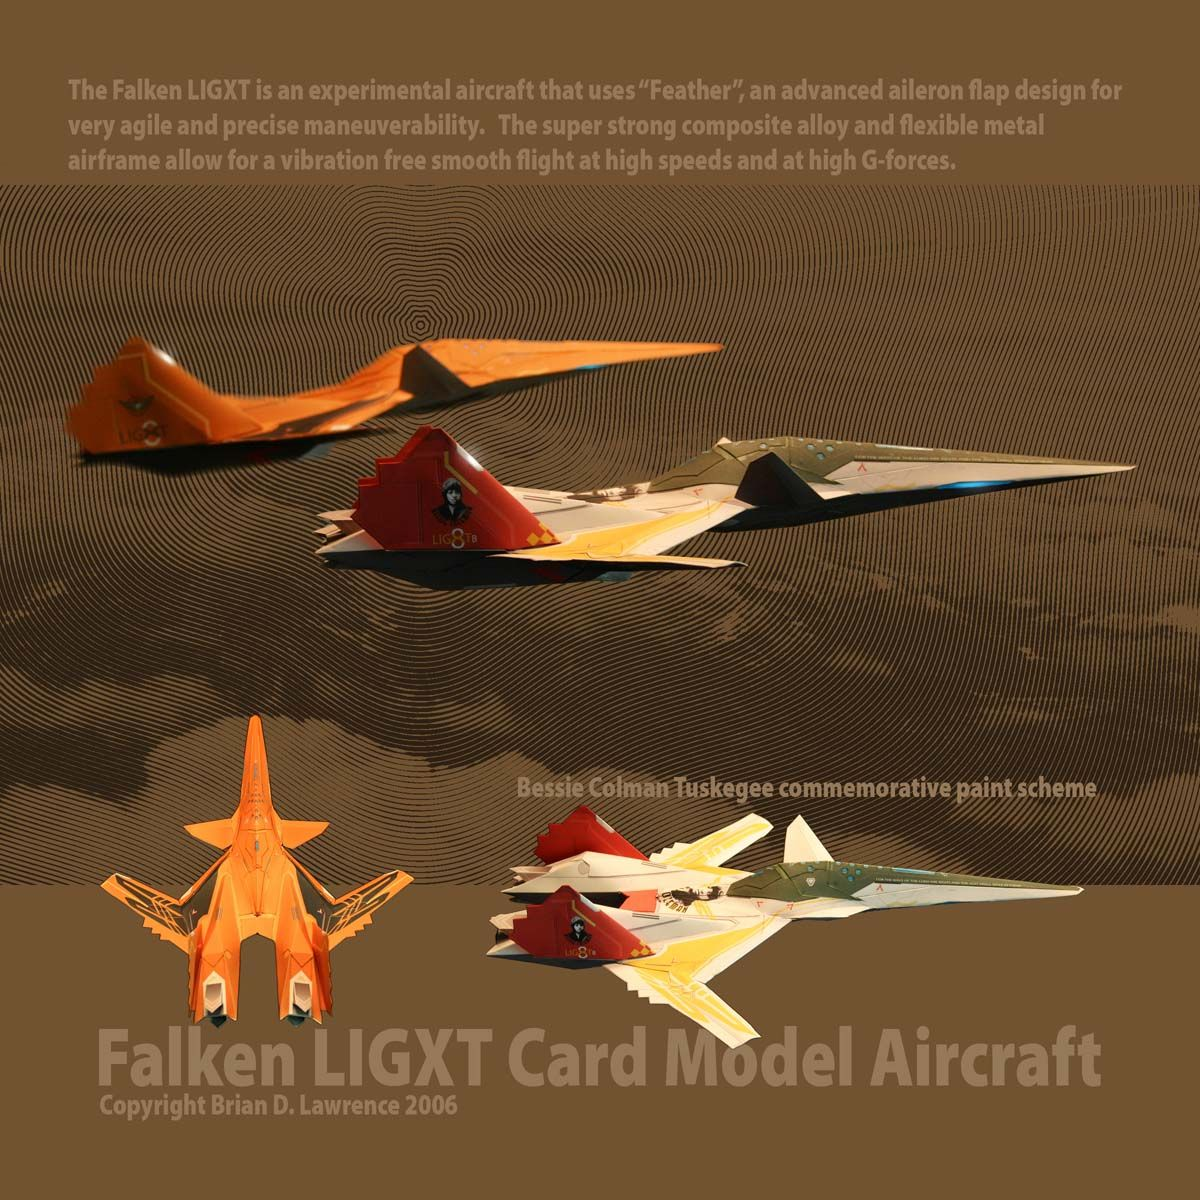 Card model aircraft based off of Ace Combat the video game